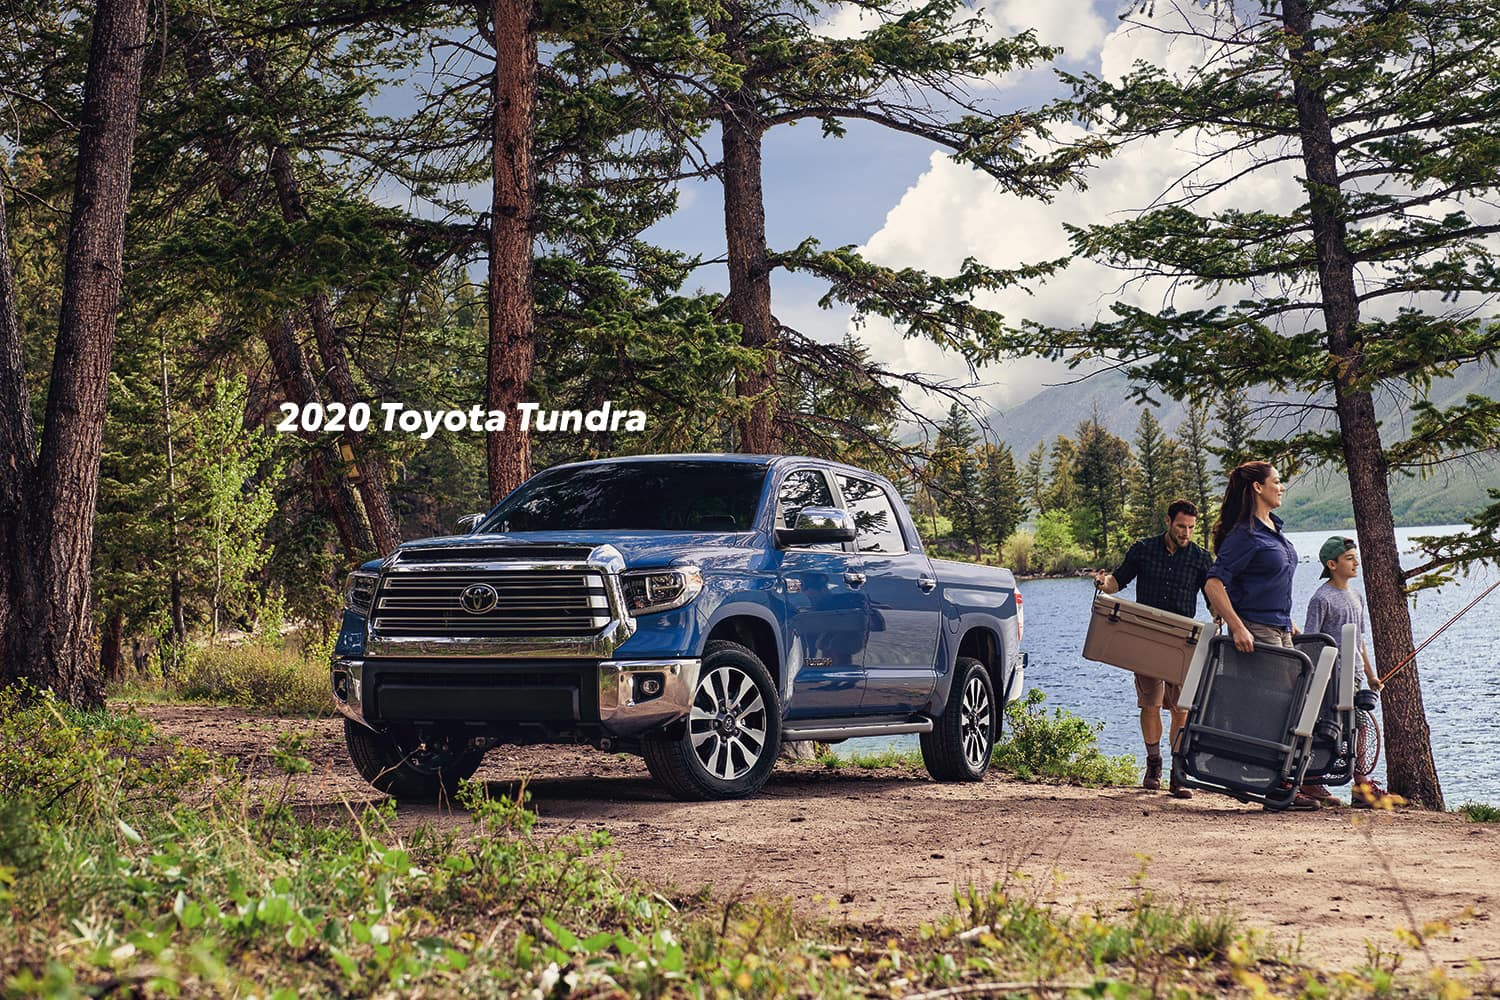 Comparison of the Toyota Tacoma vs. Tundra trucks at Lancaster Toyota of East Petersburg | Blue 2020 Toyota Tundra parked in the wood